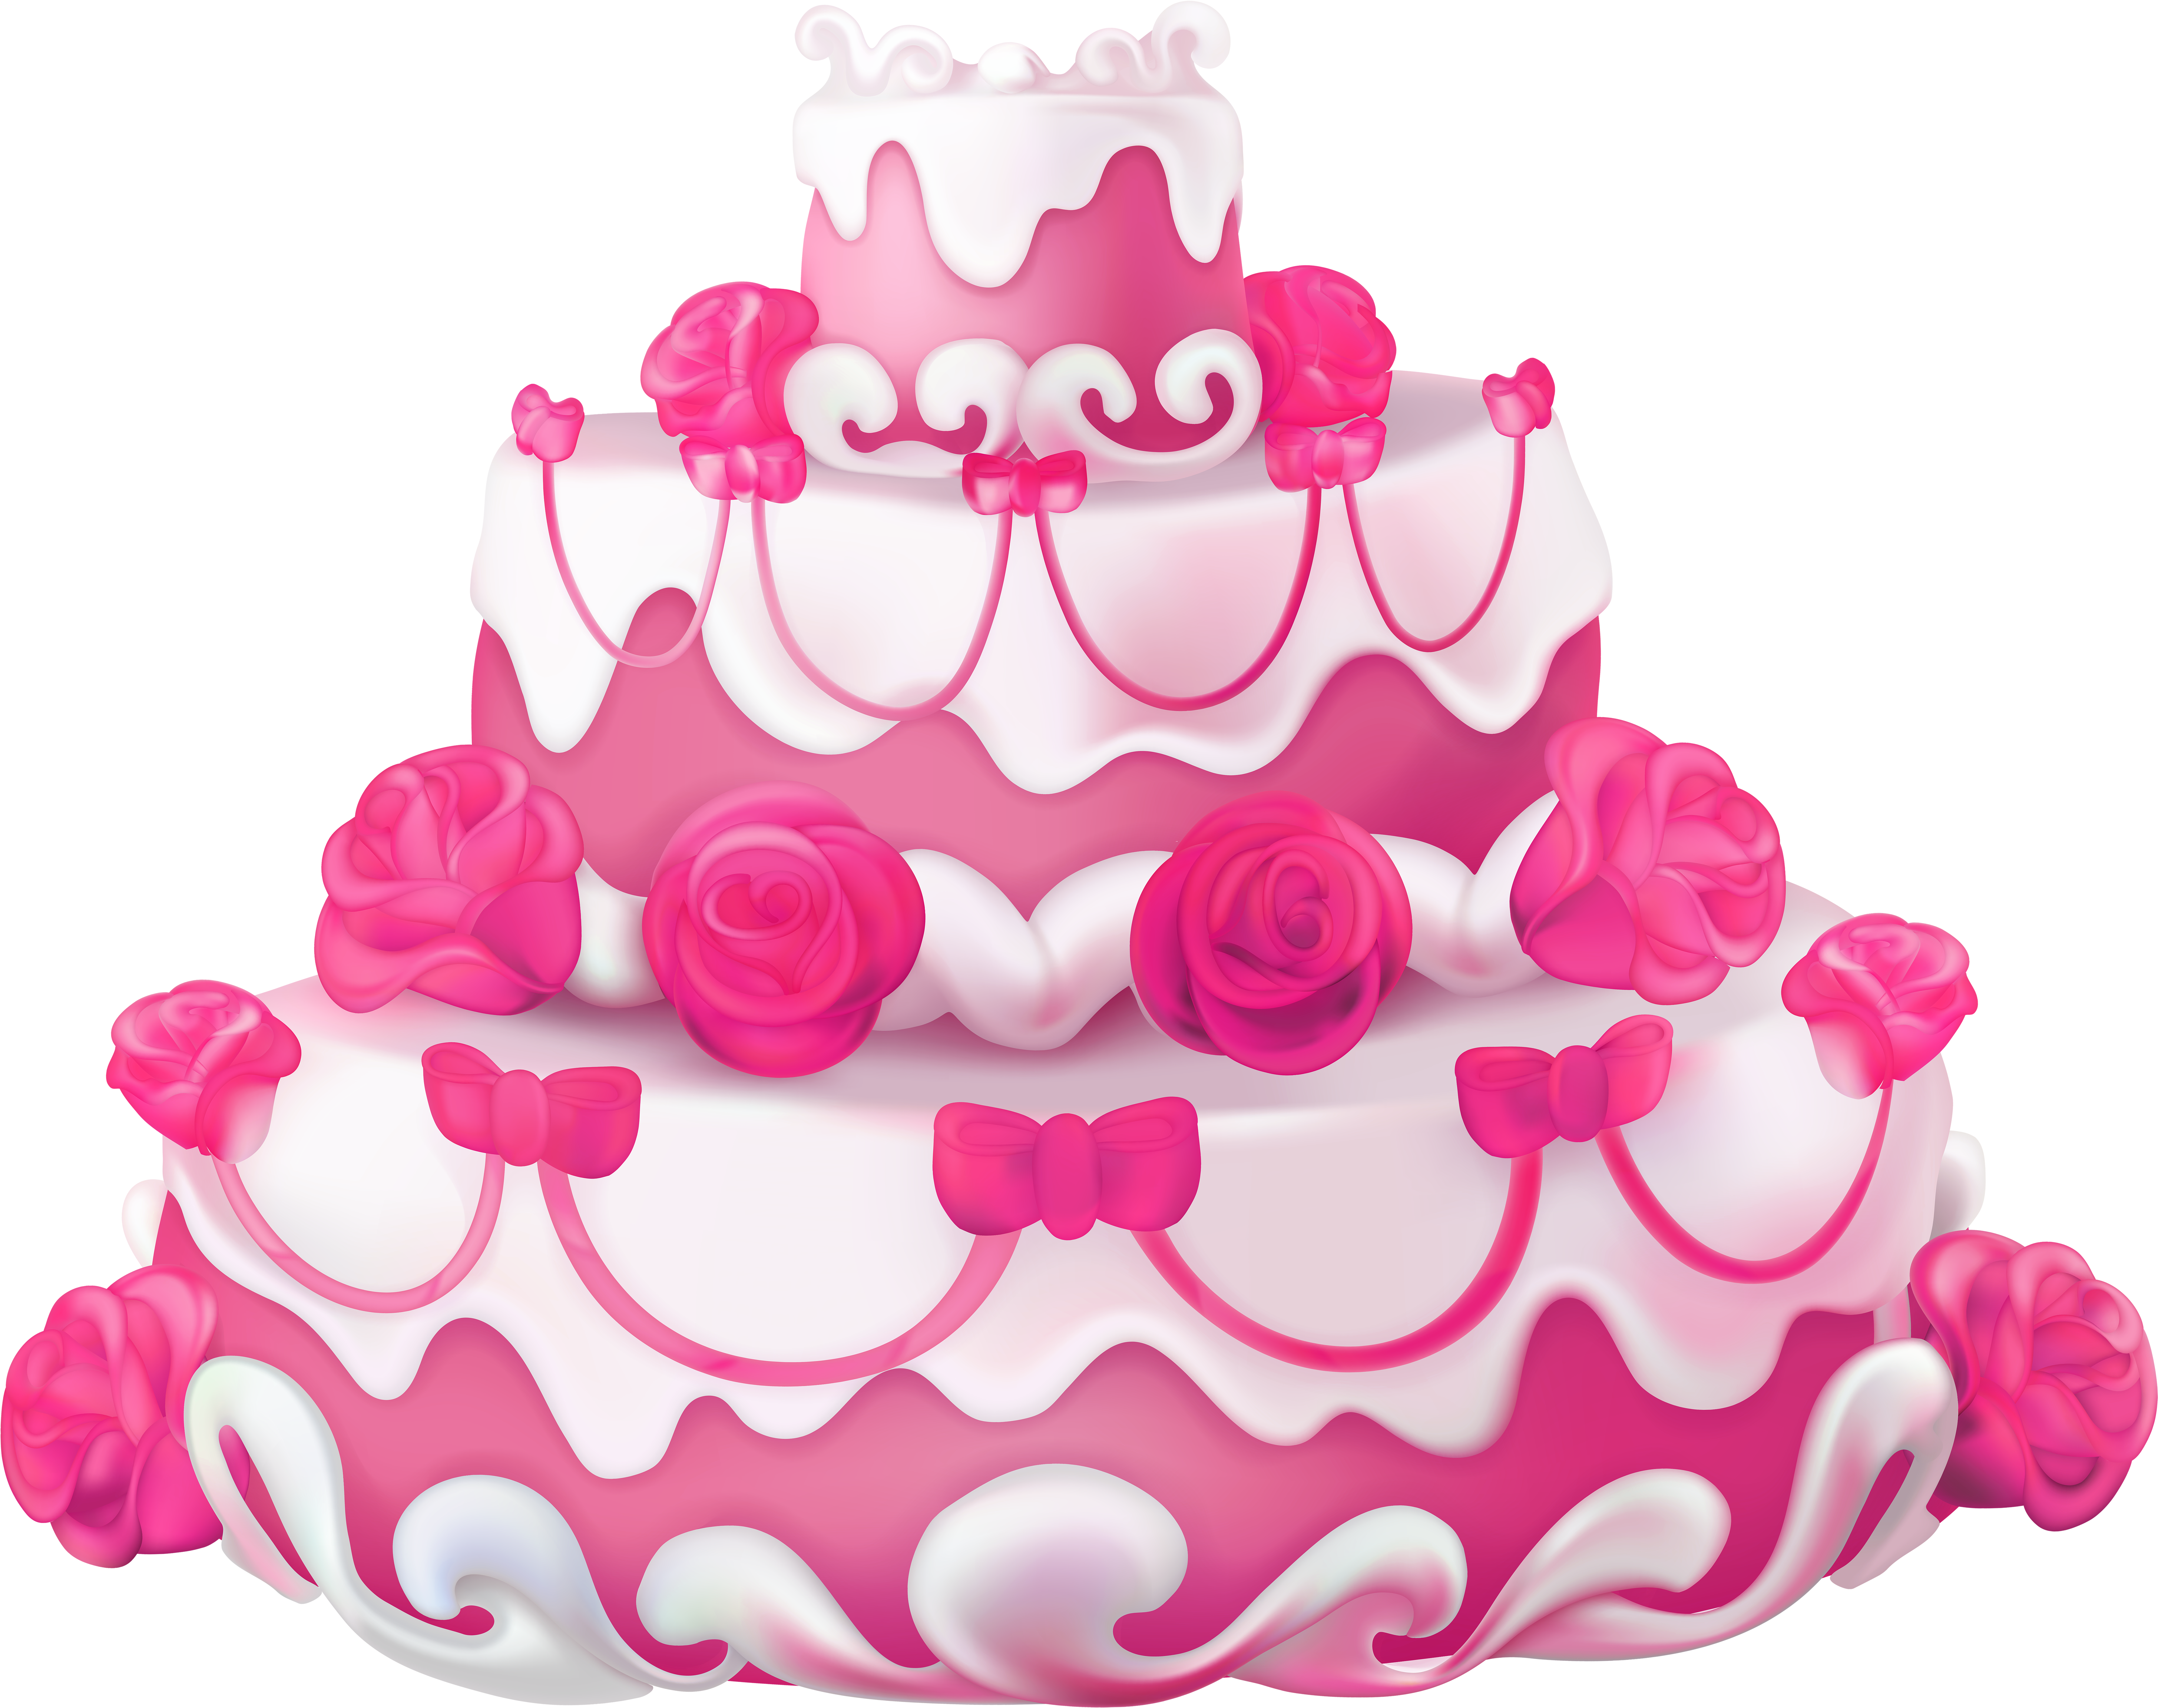 Download HD Pink Cake Clip Art At Clker - Happy Birthday